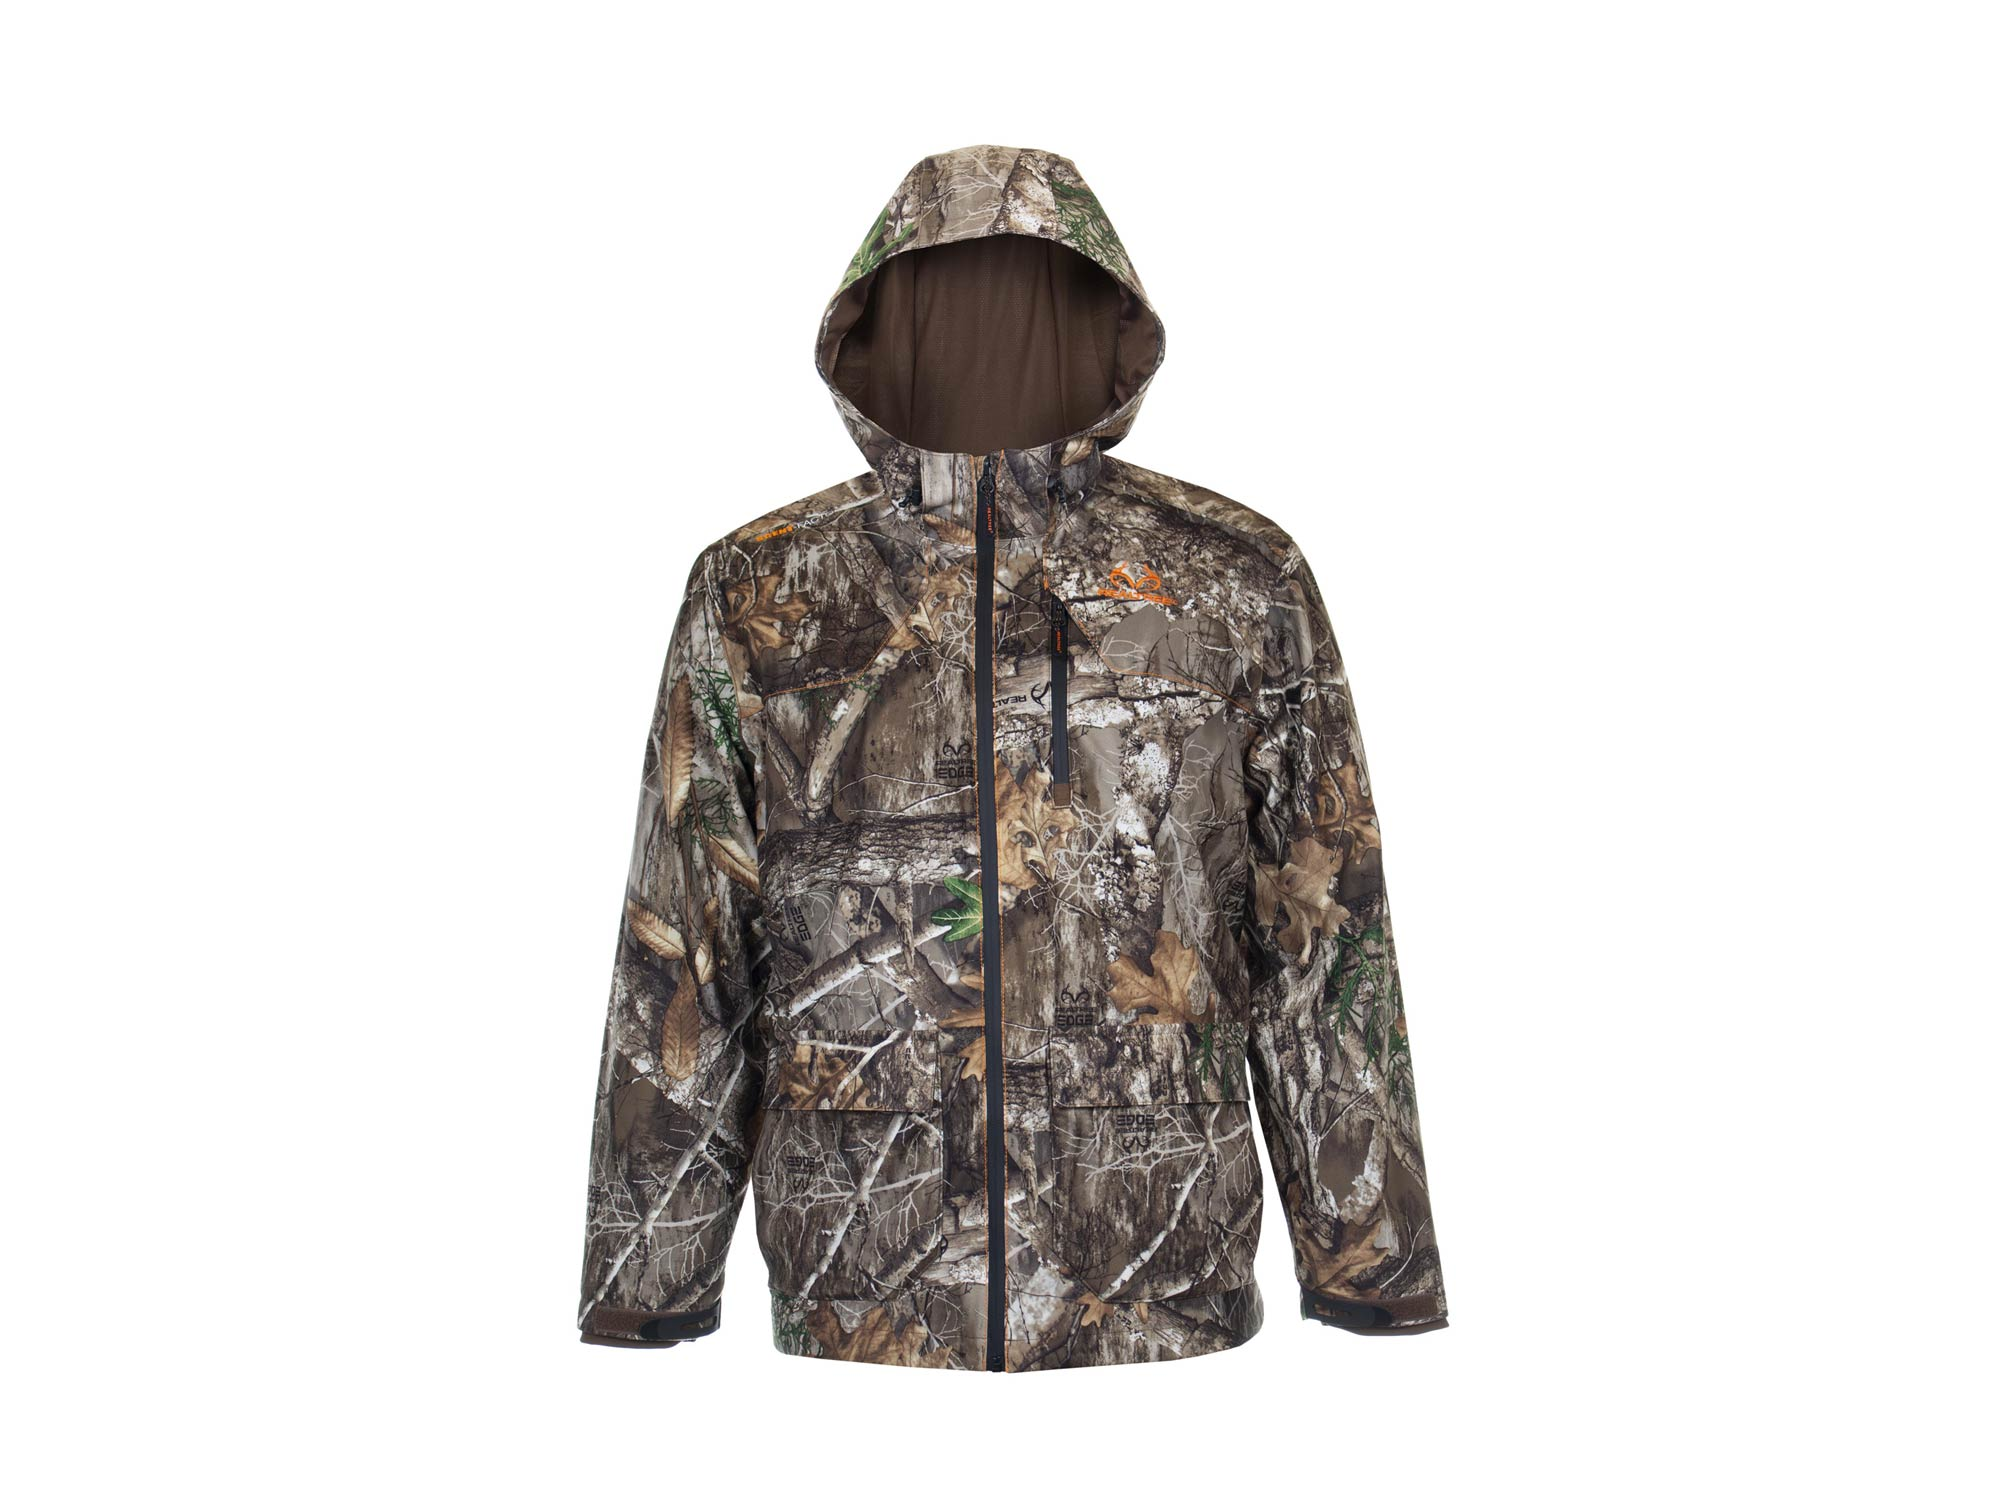 Hunting jacket in Realtree EDGE camouflage